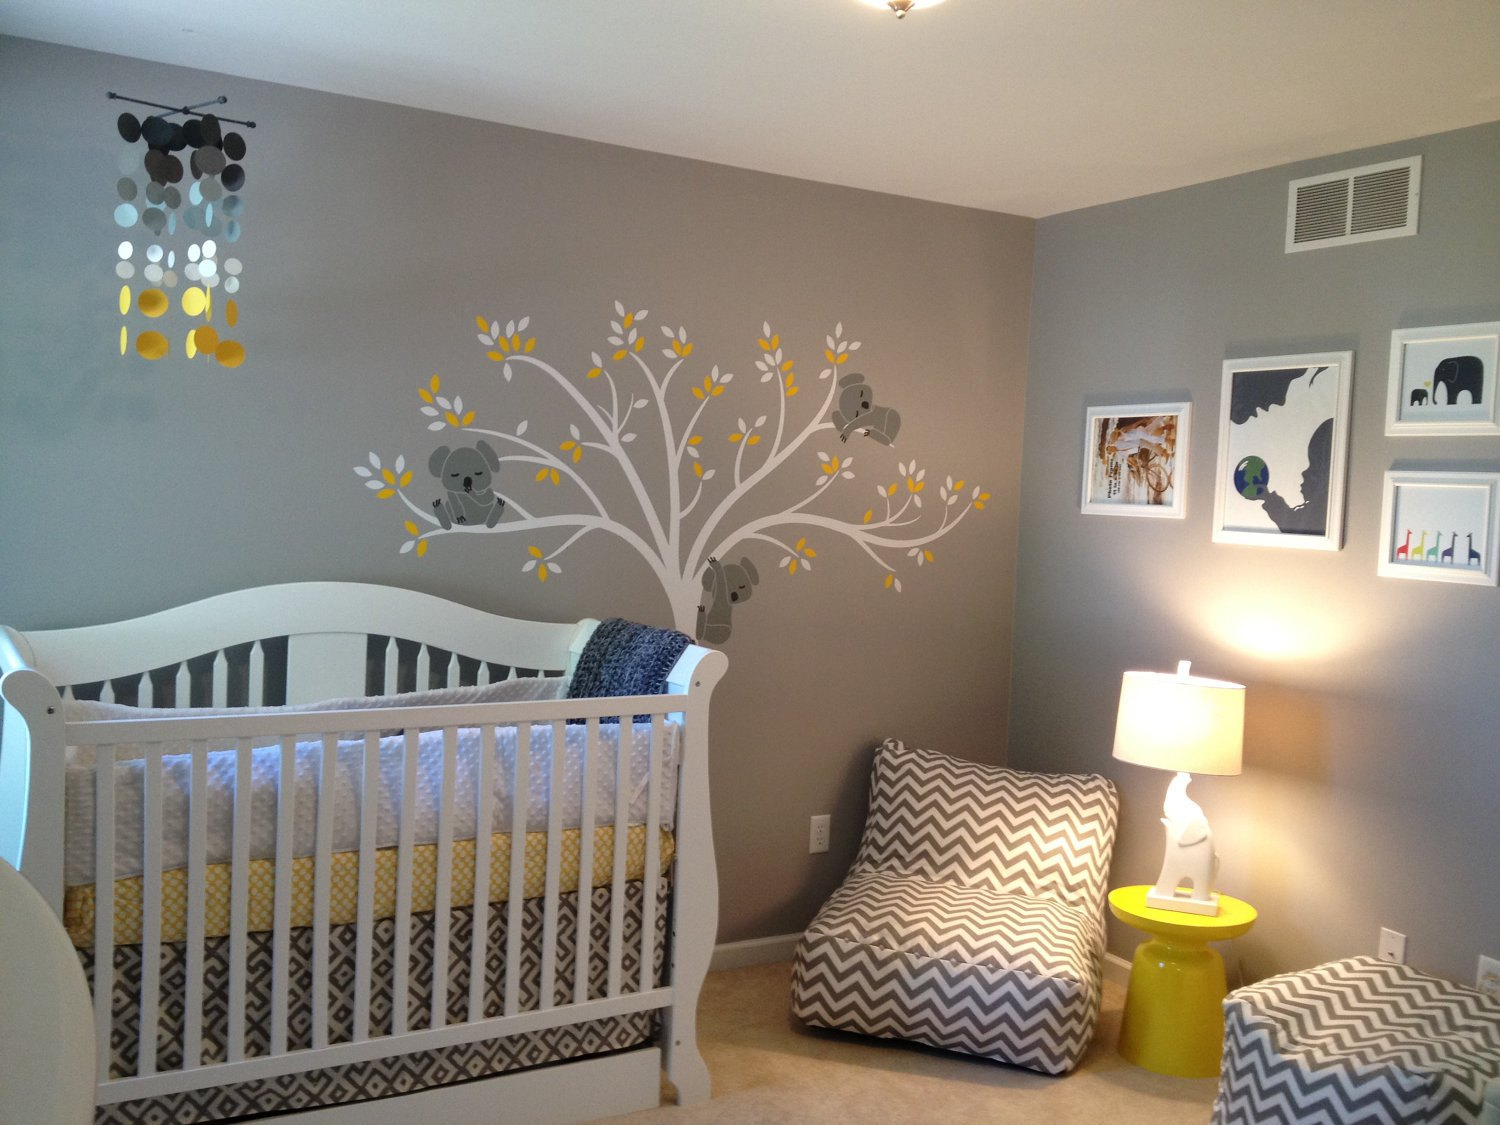 Nursery Wall Decor What Is The Best Nursery Wall Decor For Both Boys And Girls